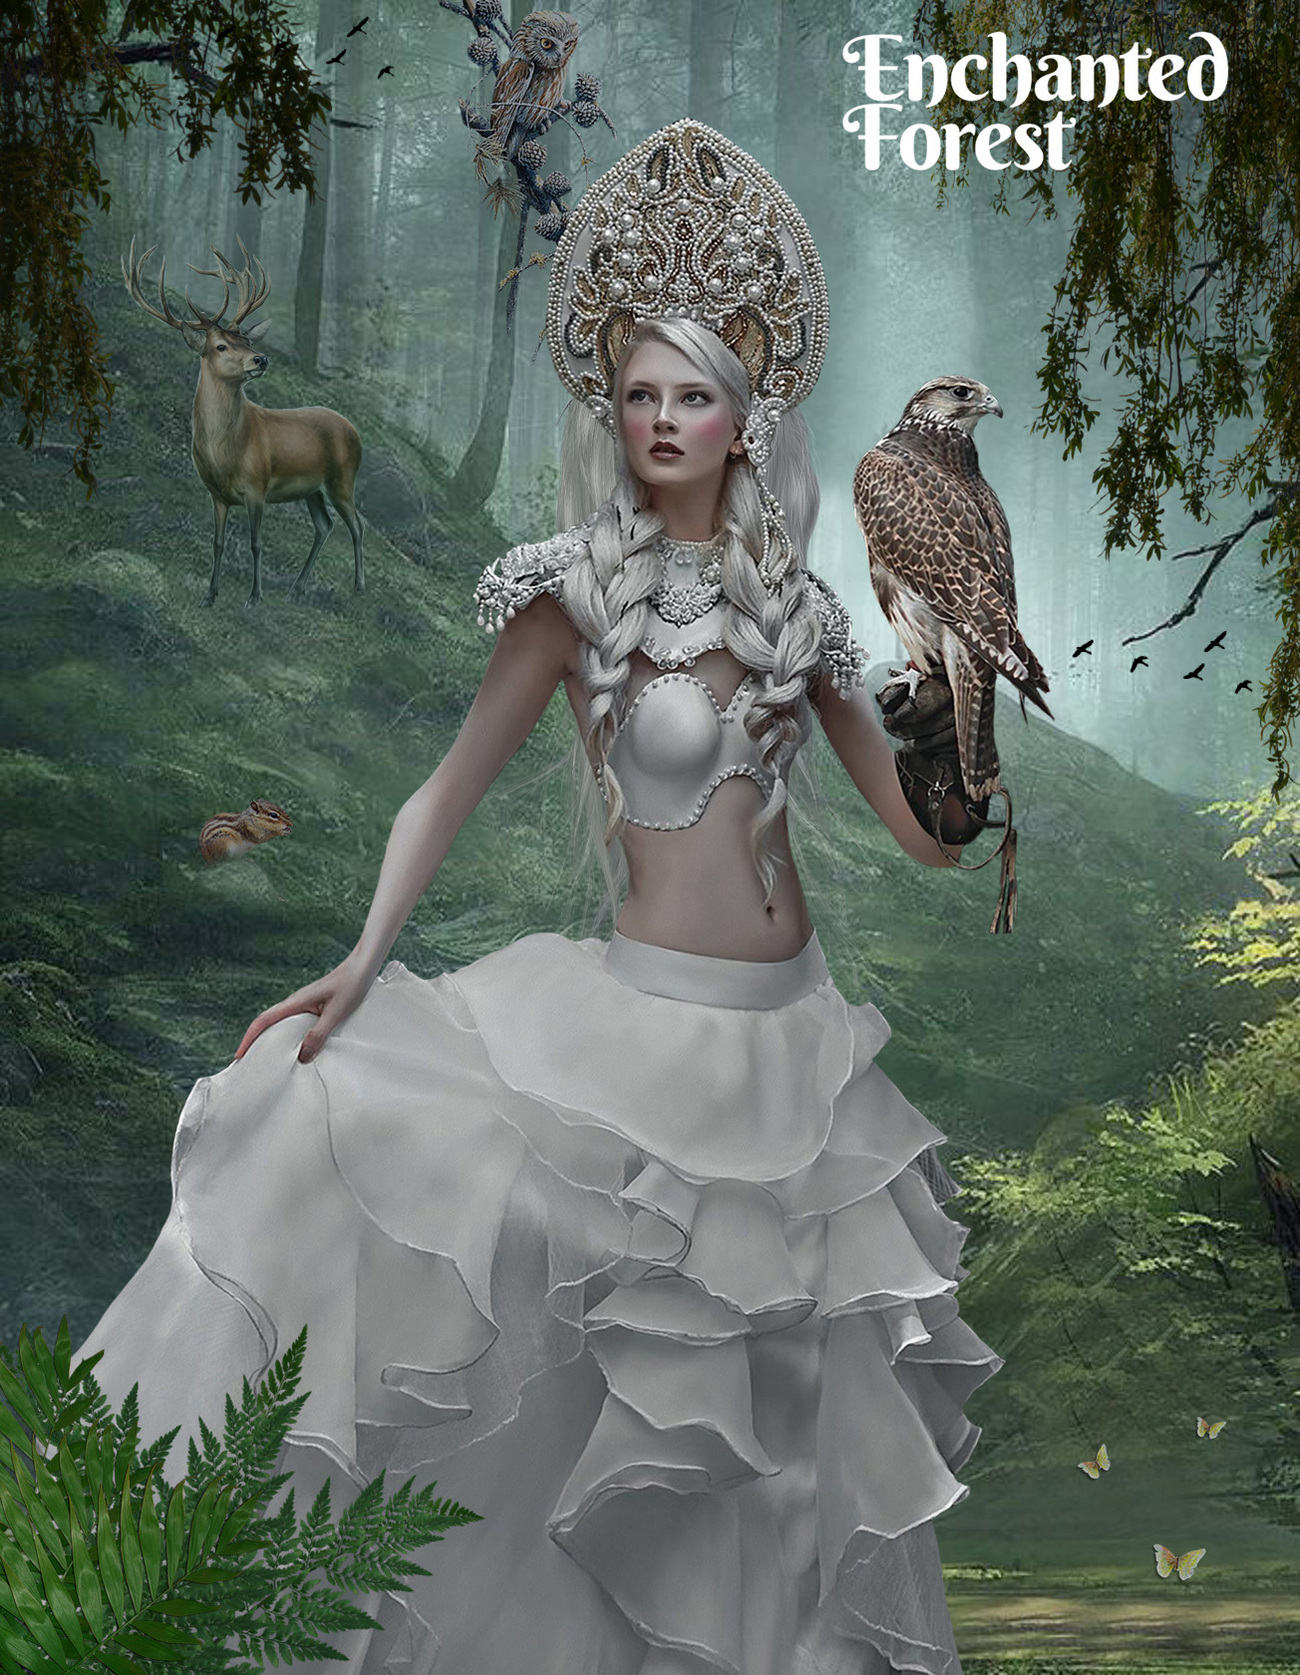 Enchanted Forest. for all my dear friends who love